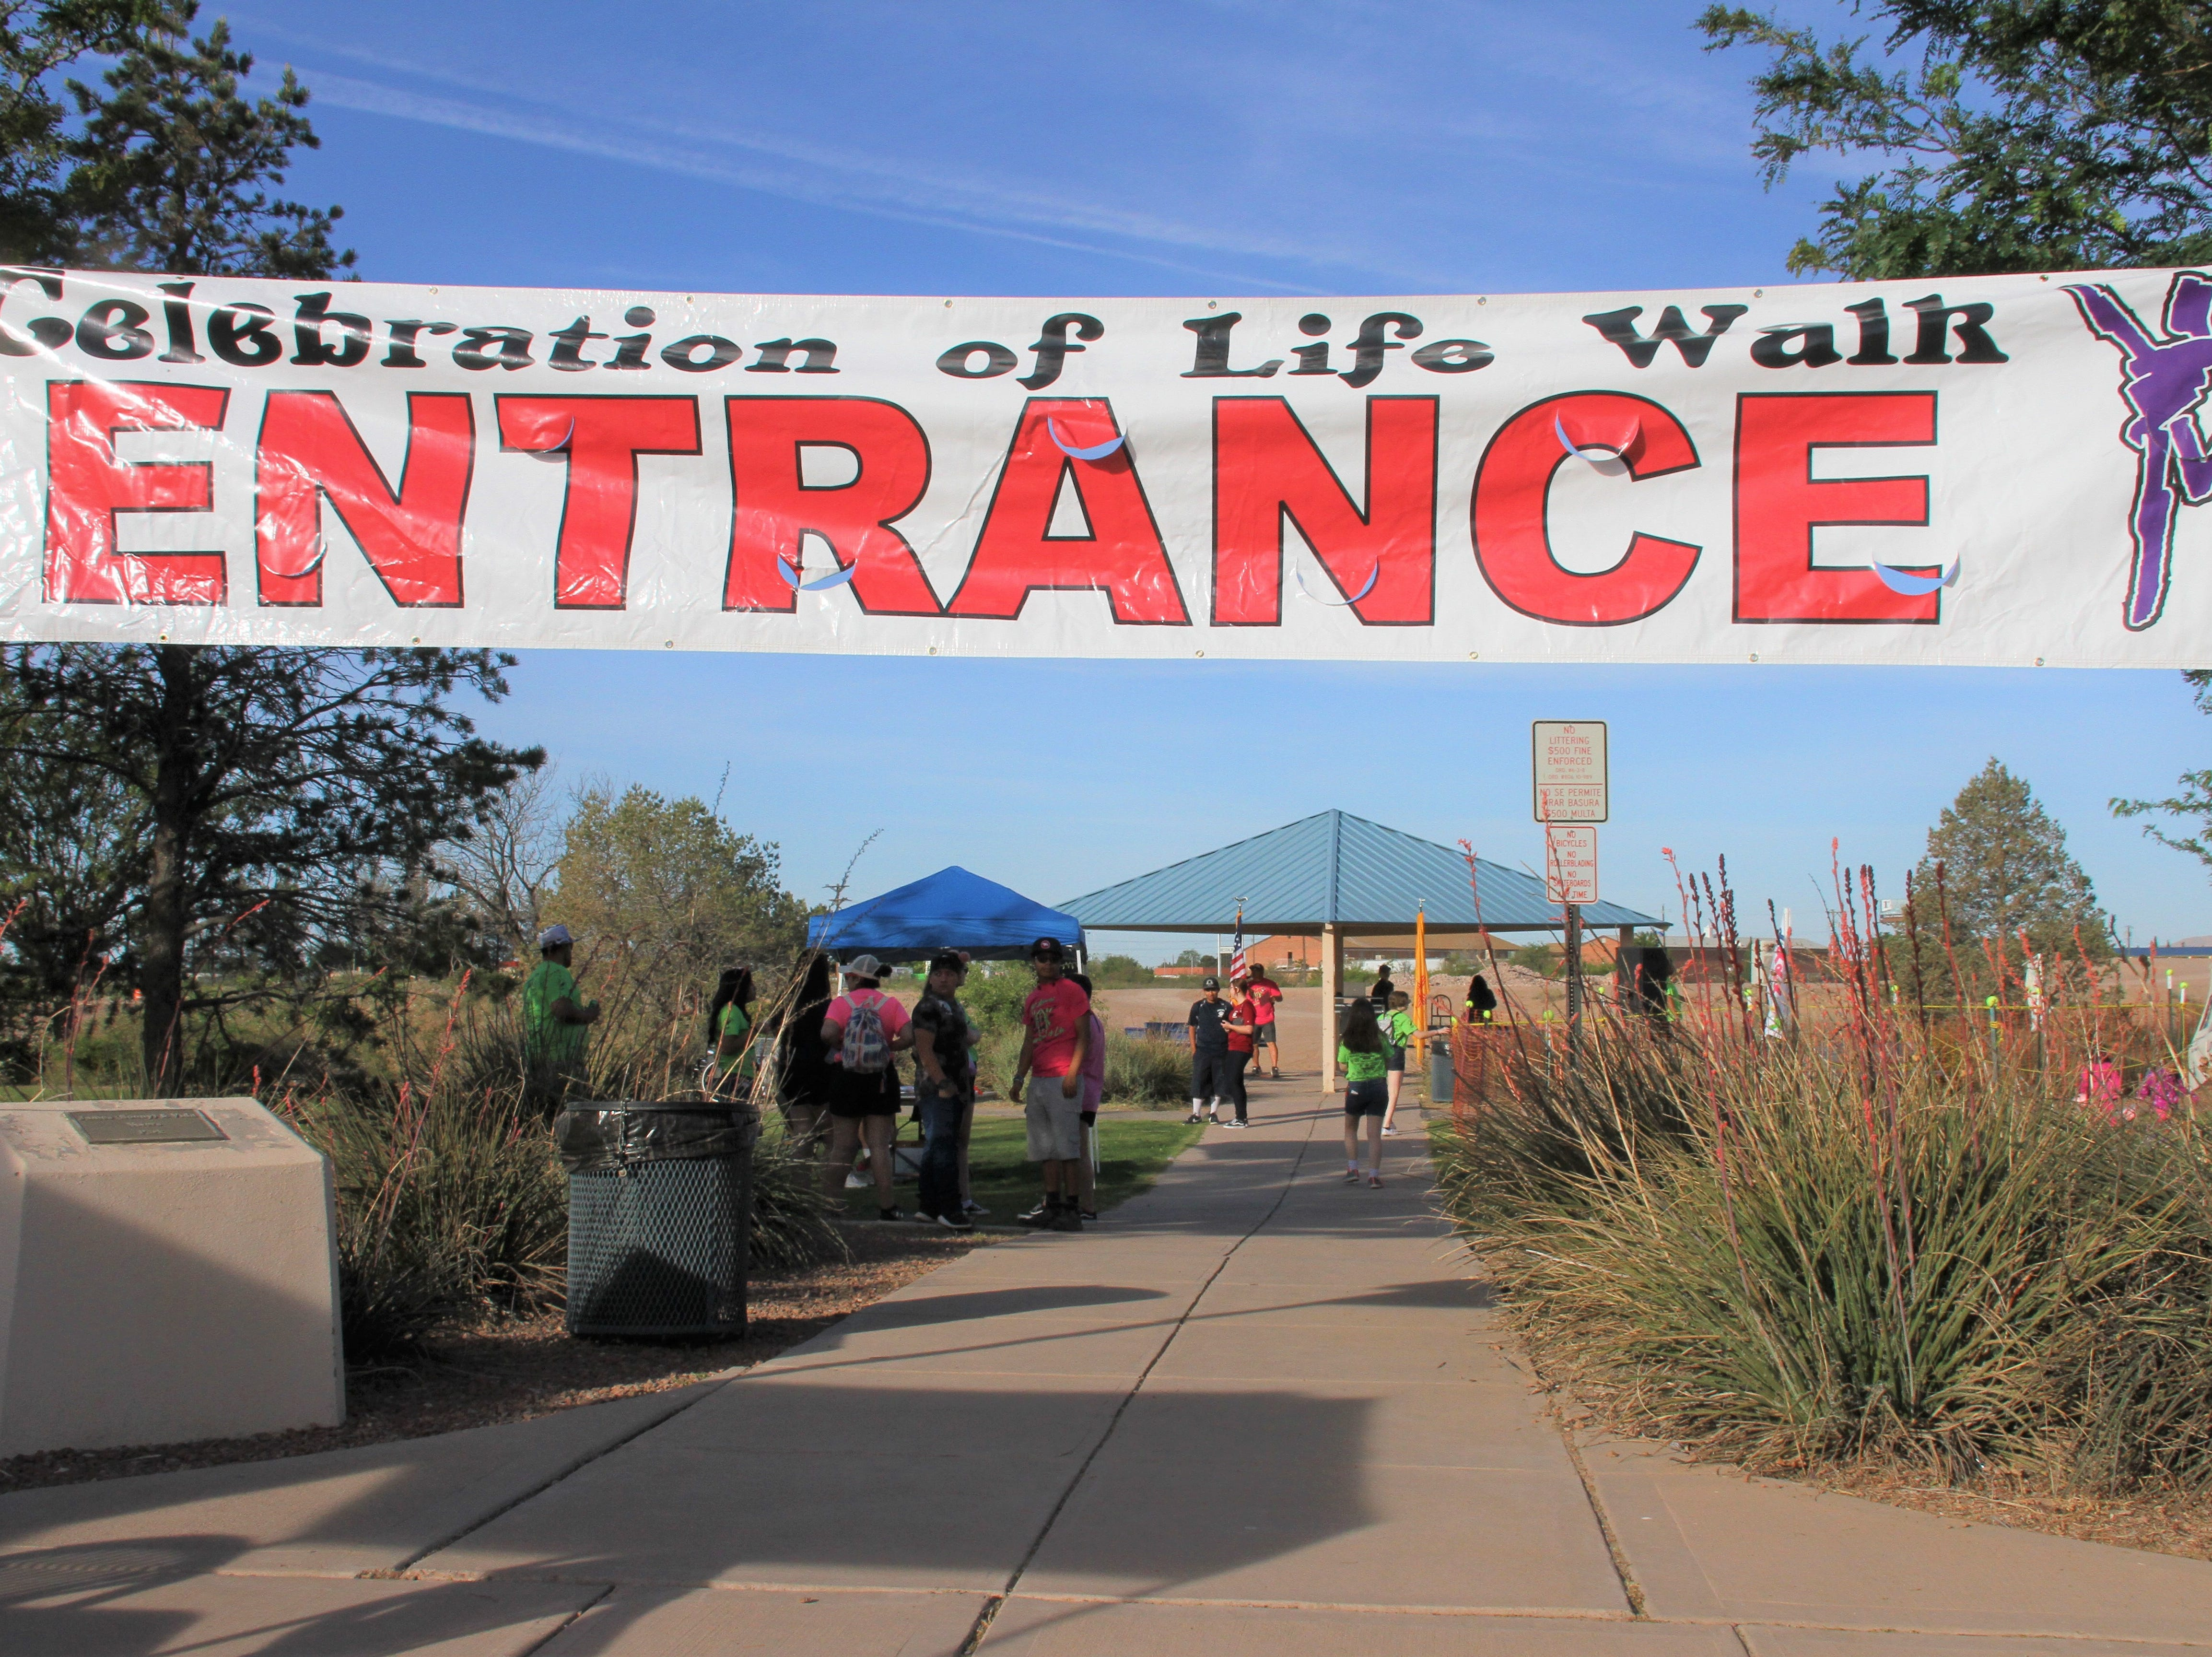 The 14th annual Celebration of Life Walk